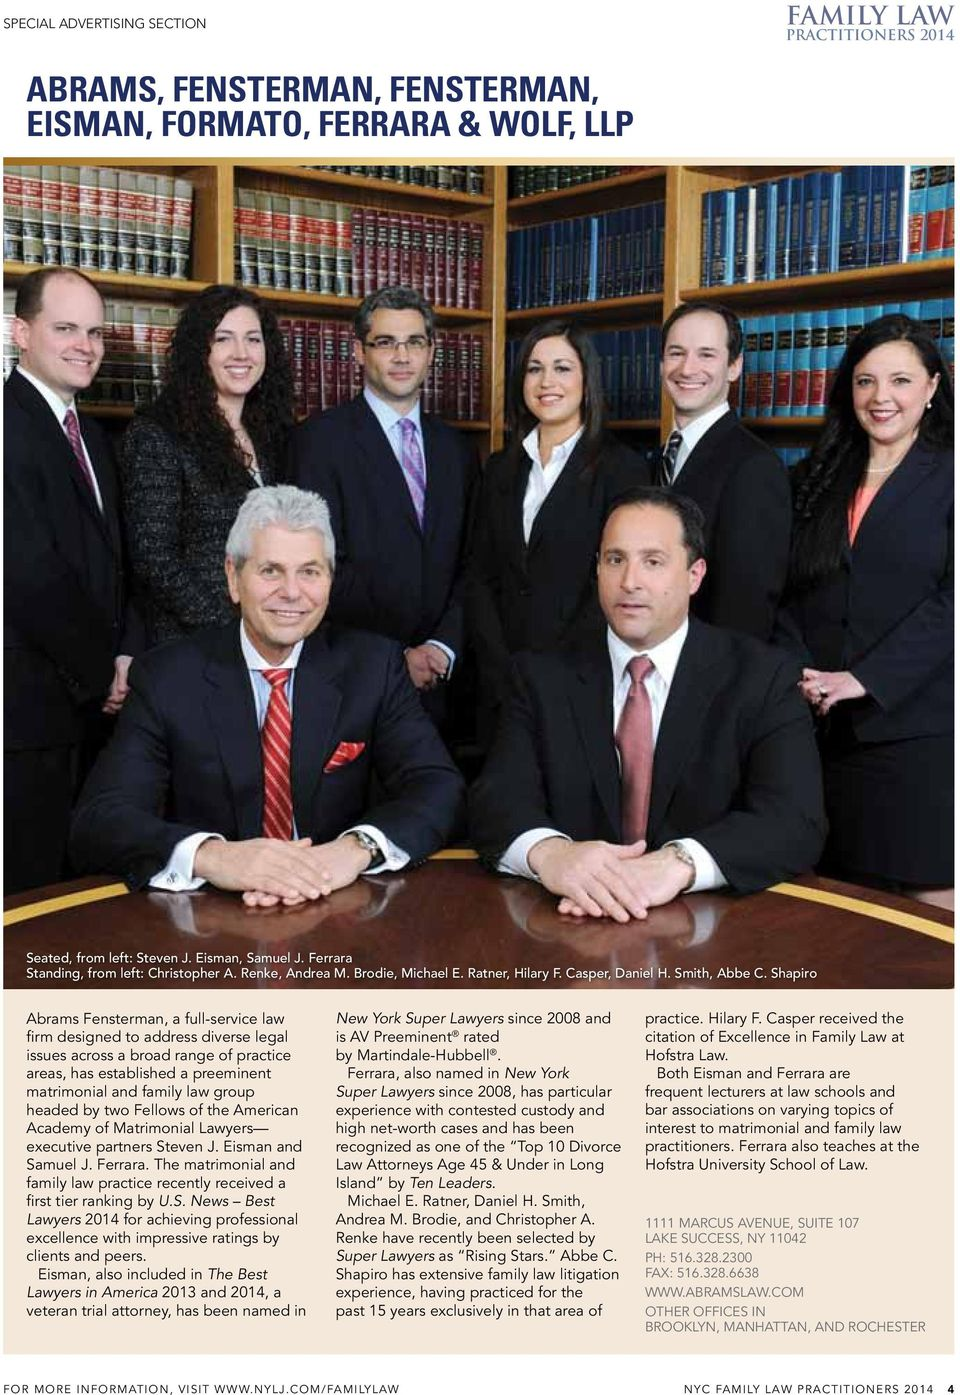 Shapiro abrams fensterman, a full-service law firm designed to address diverse legal issues across a broad range of practice areas, has established a preeminent matrimonial and family law group